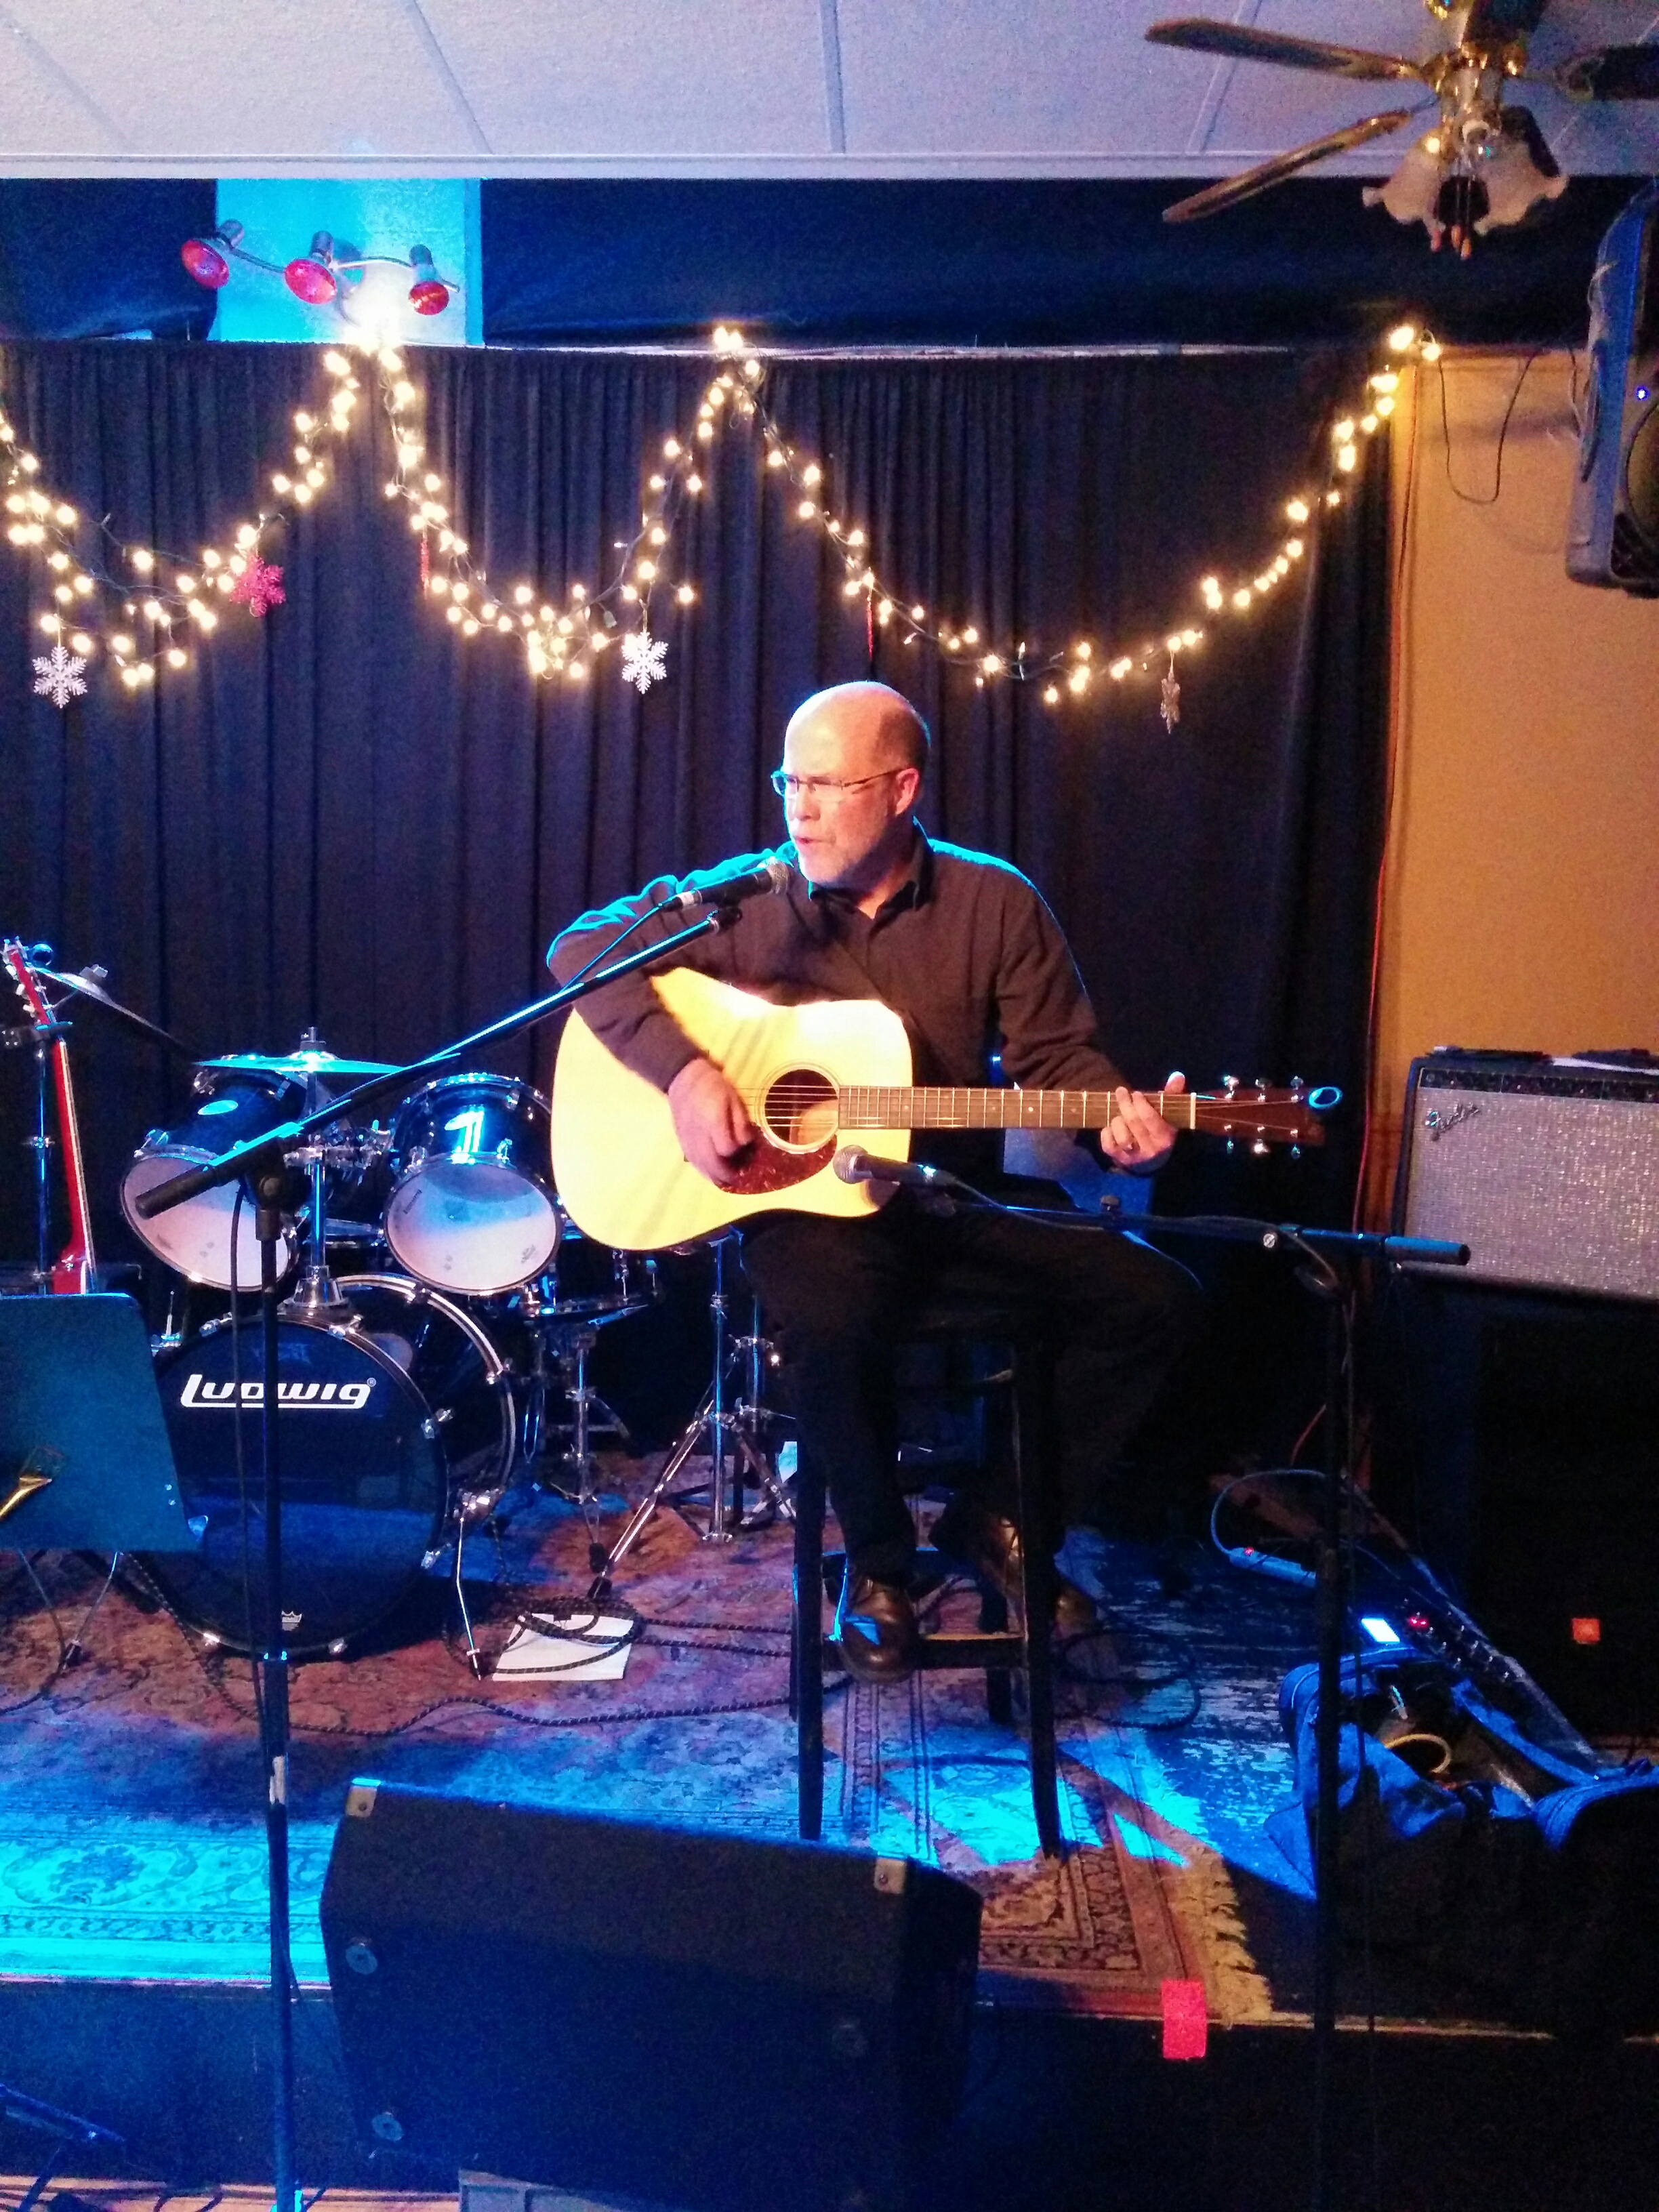 Alex Moir kicks things off with his sweet Martin acoustic guitar